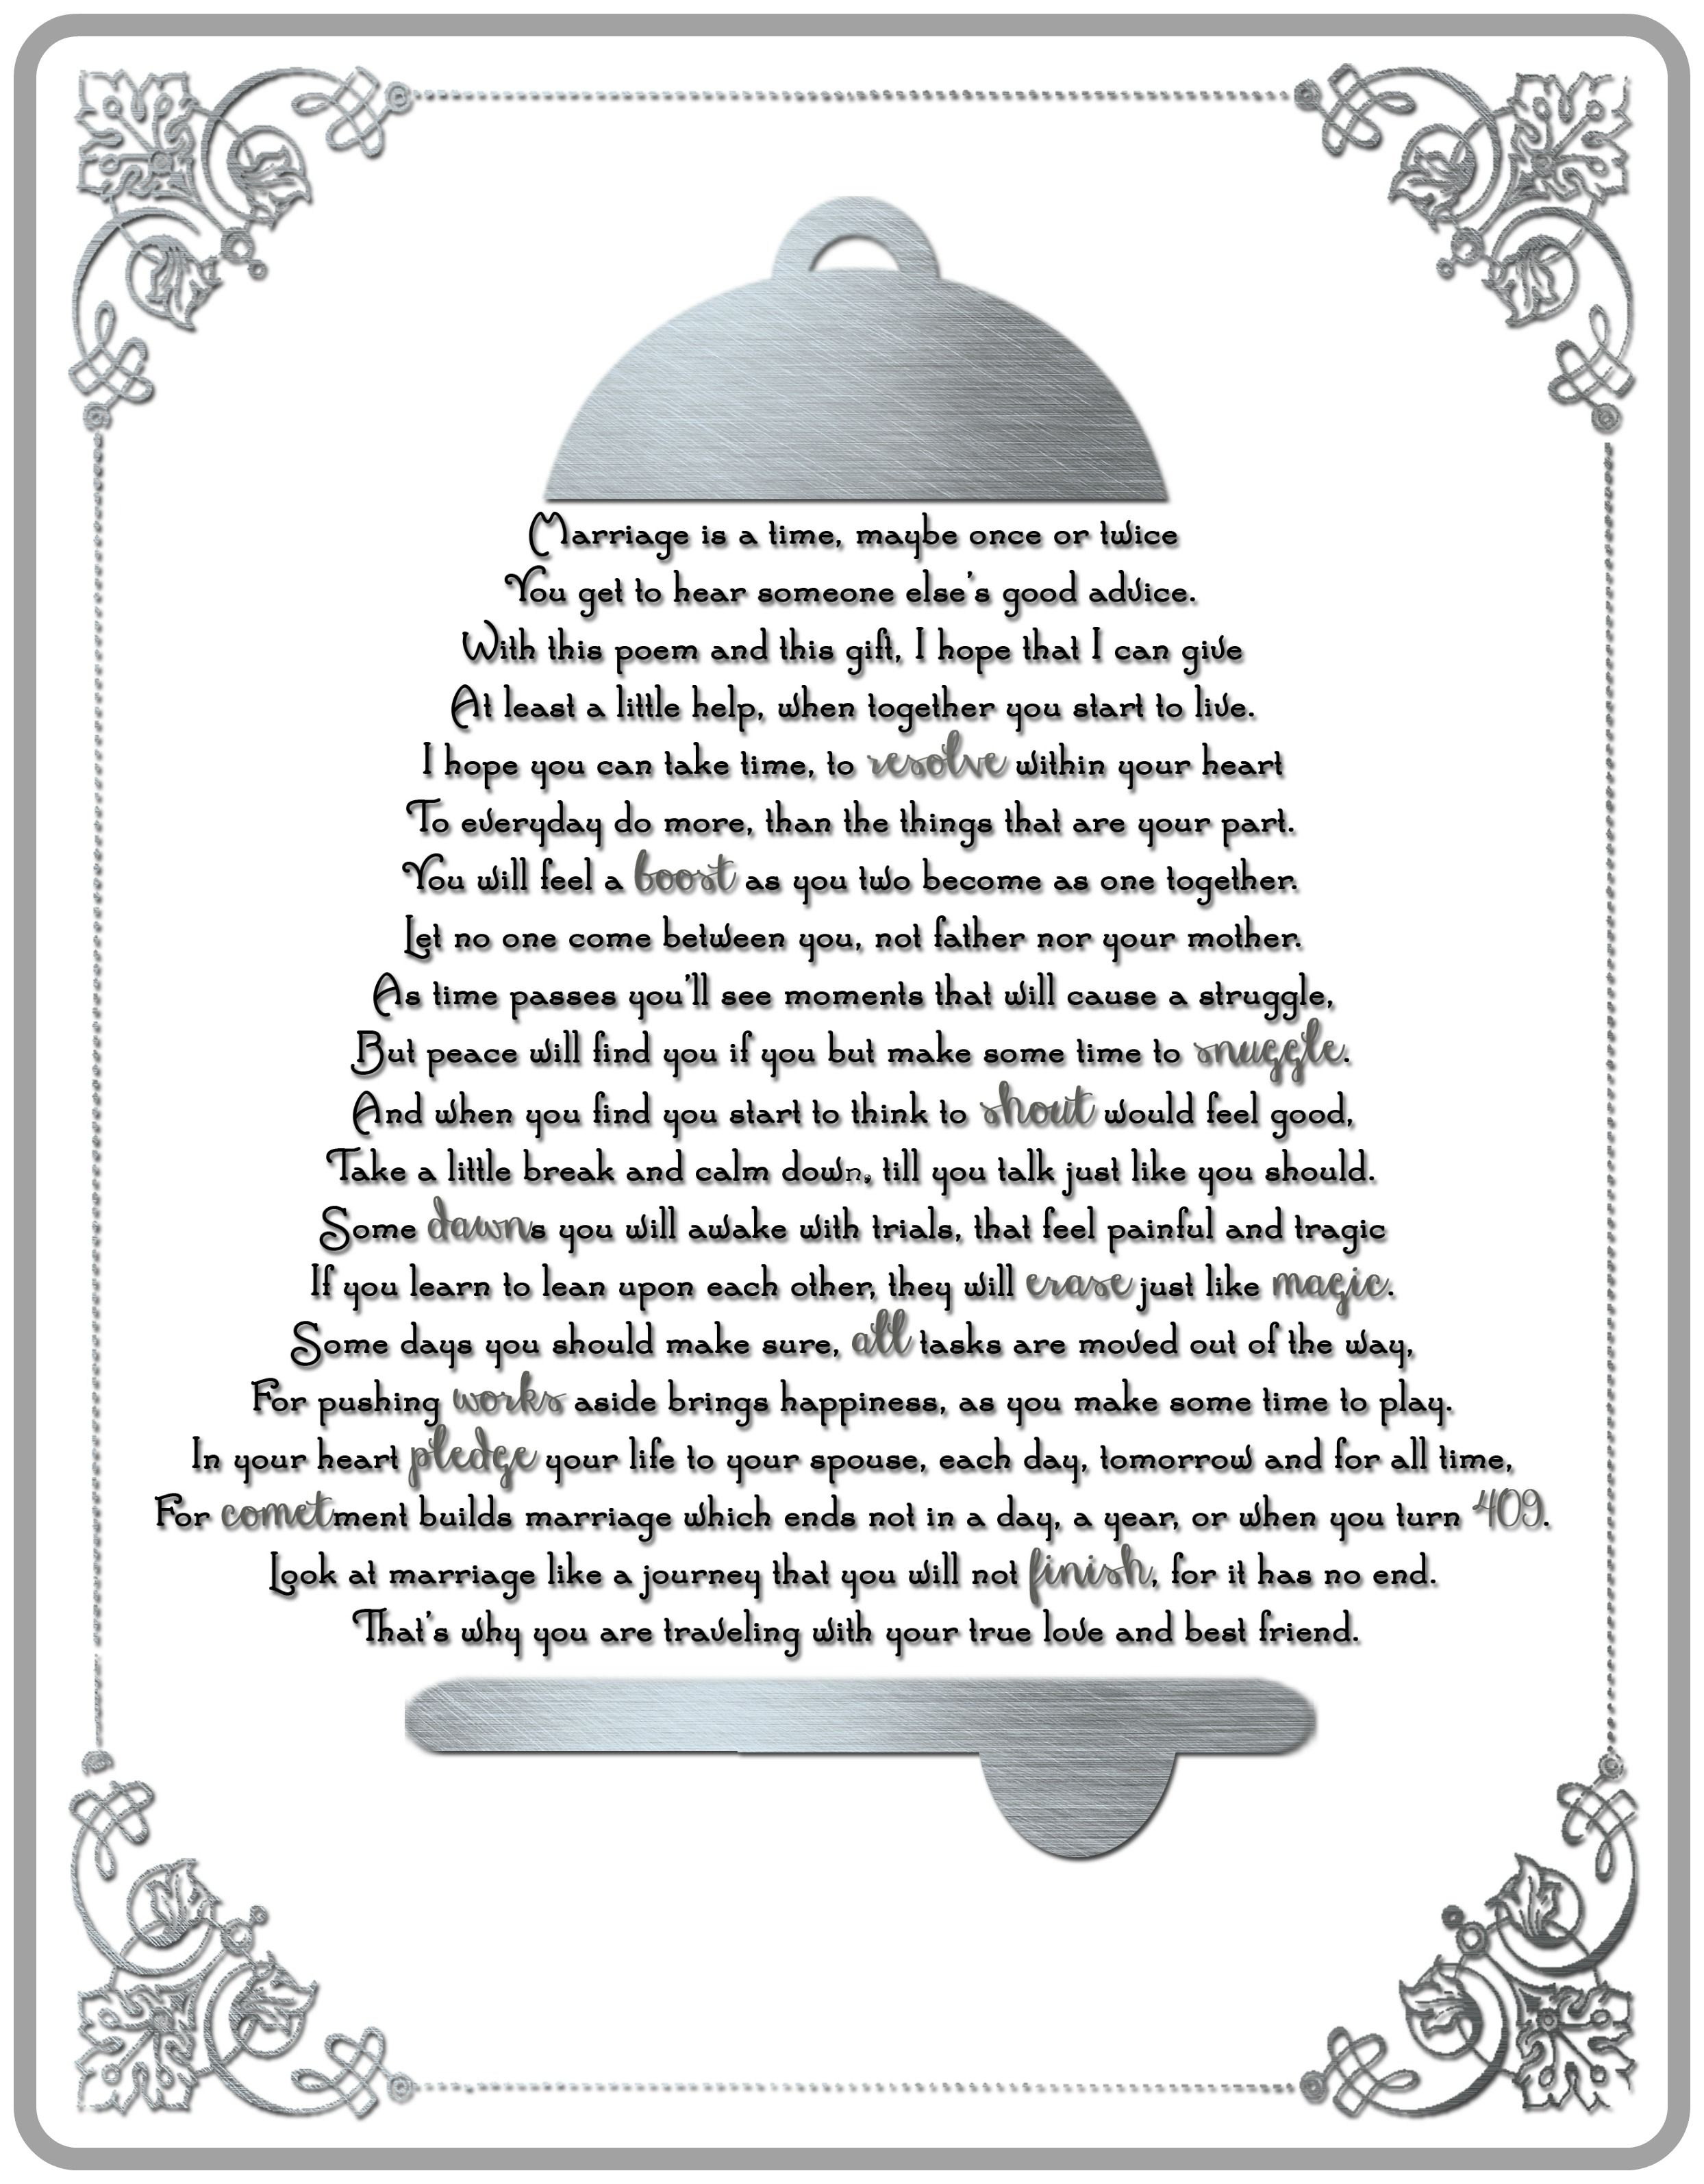 This is a cute poem to go along with cleaning supplies as a